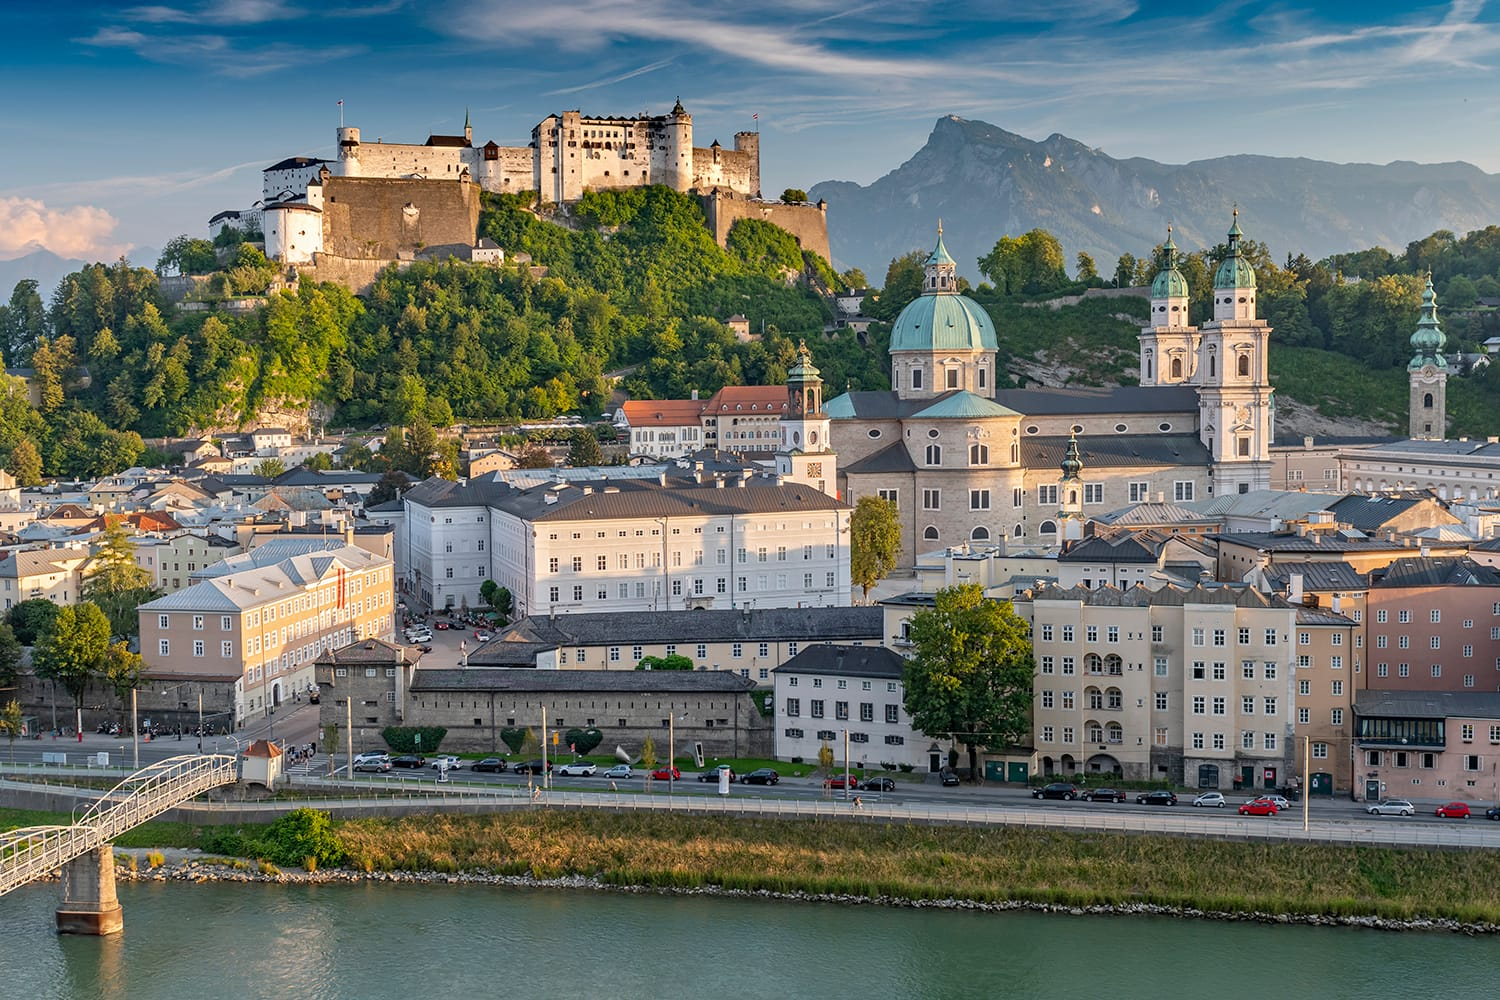 View from the Kapuzinerberg on the old town with Hohensalzburg Castle, Salzburg Cathedral and Collegiate Church, Salzburg Austria.